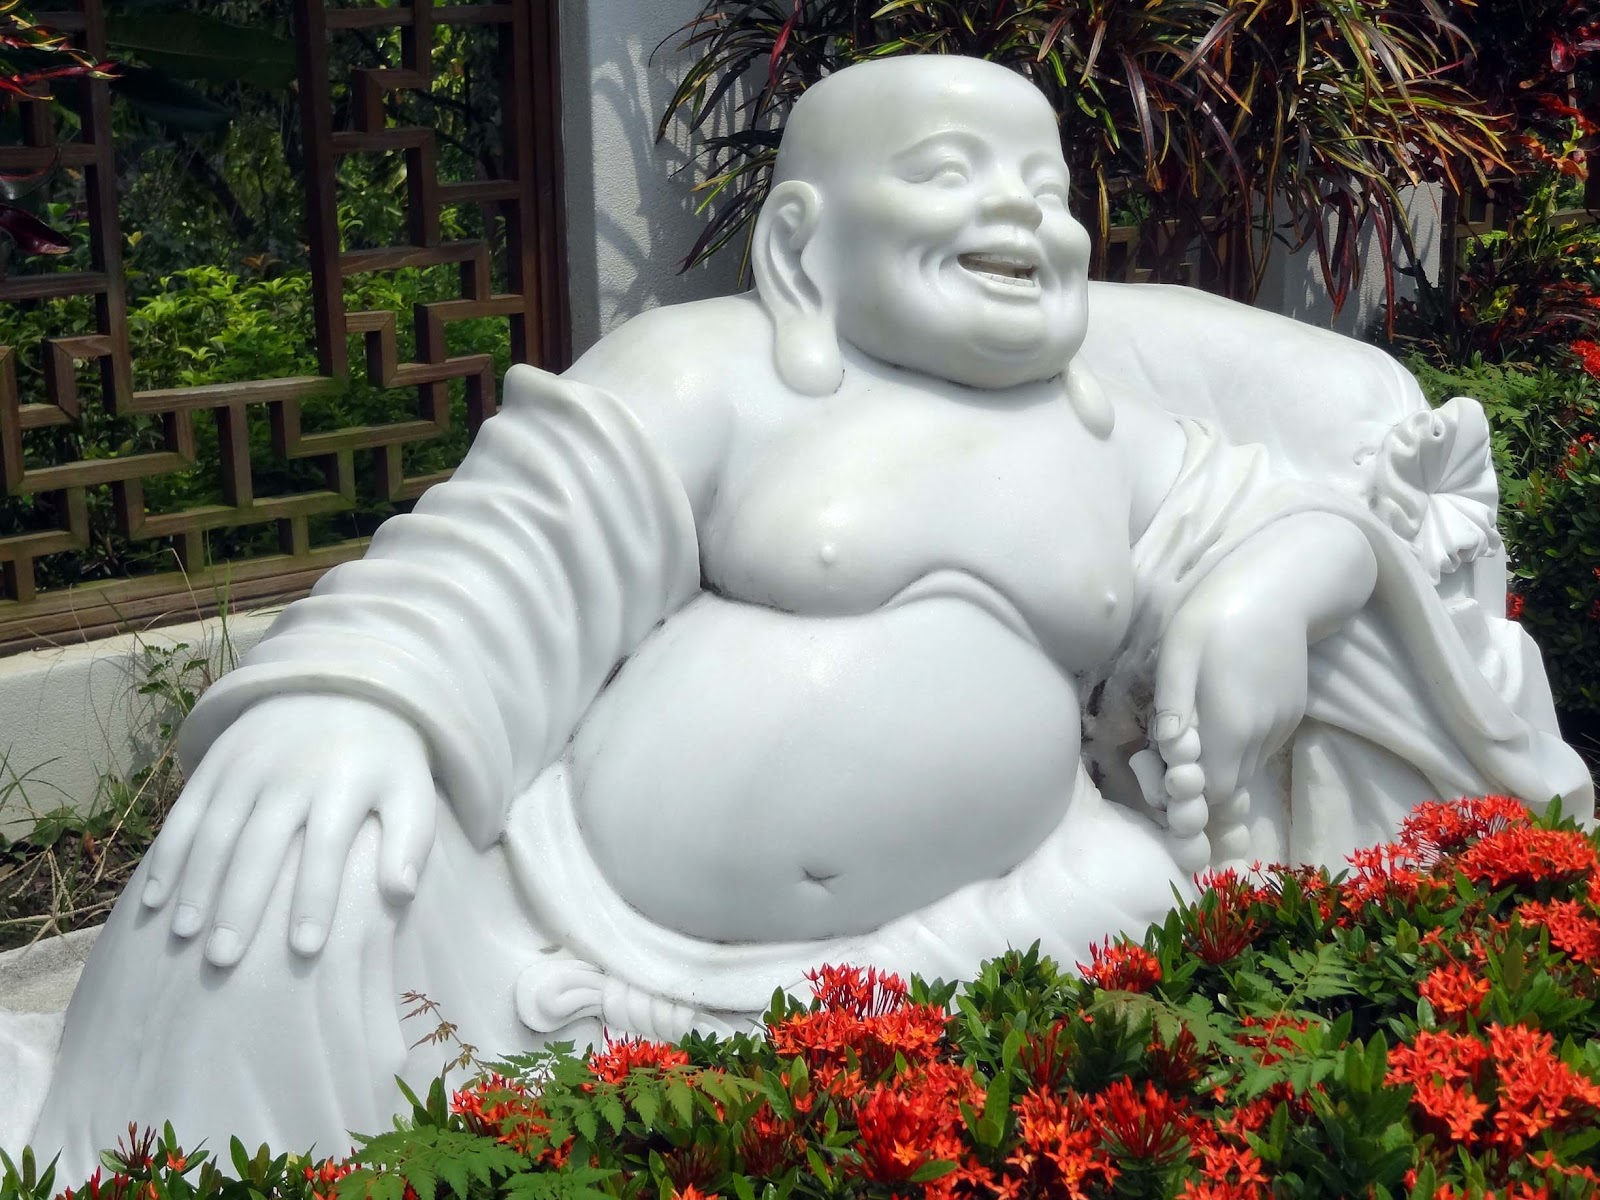 Laughing Buddha Wallpaper Only the laughing buddha hasLaughing Buddha Wallpaper